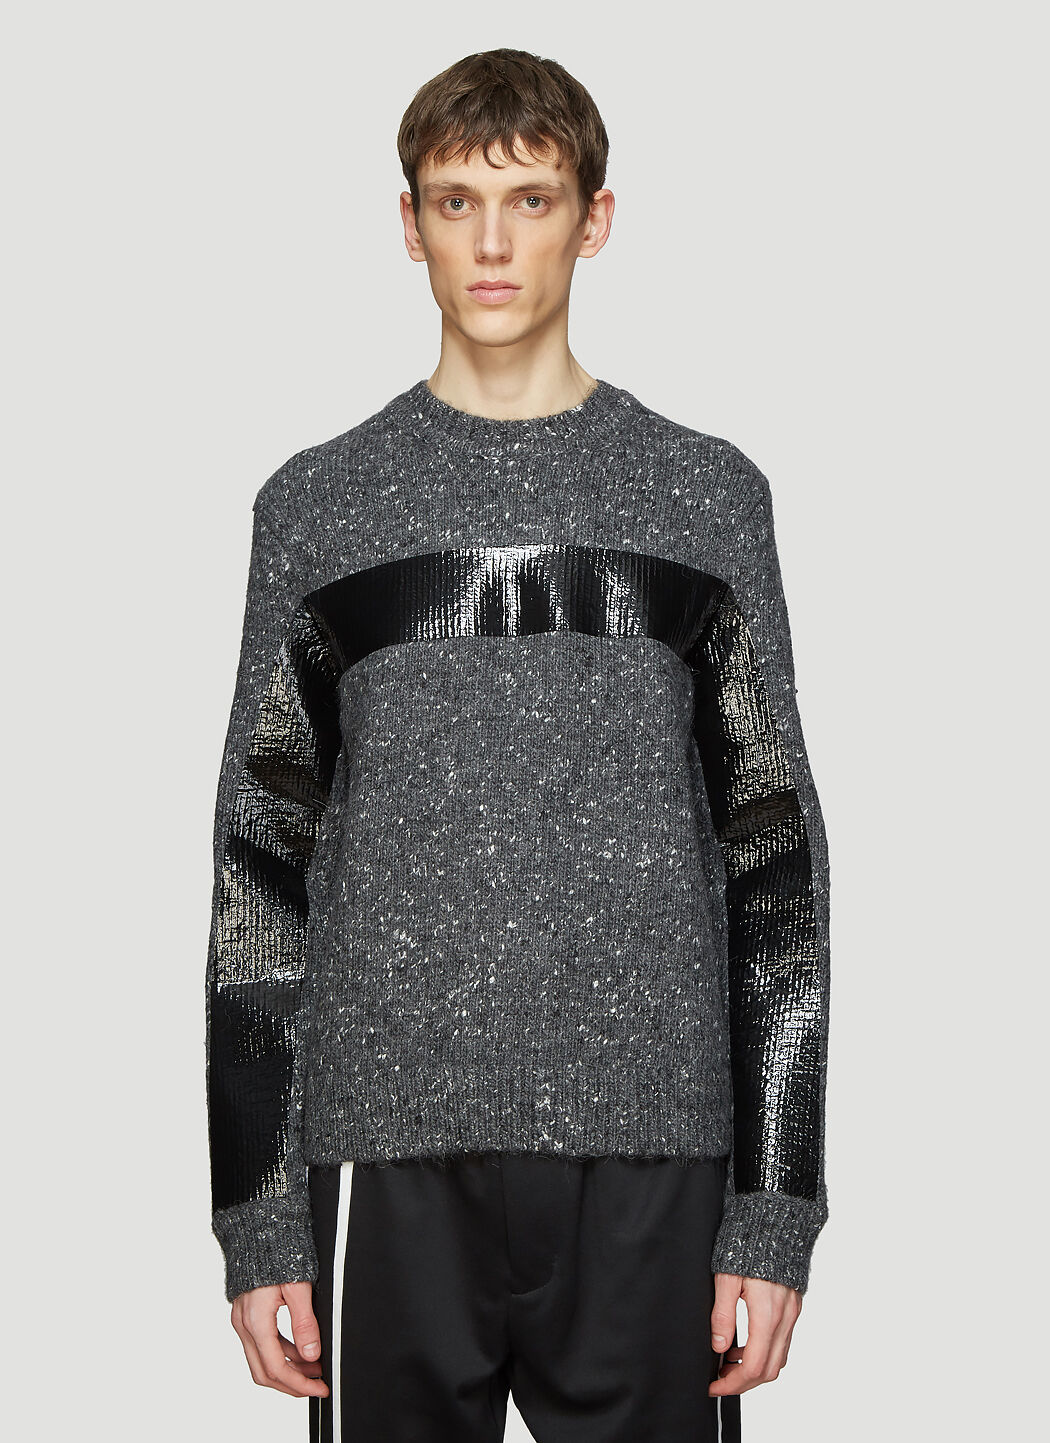 Helmut Lang Knits Gloss Tape Knit Sweater in Grey